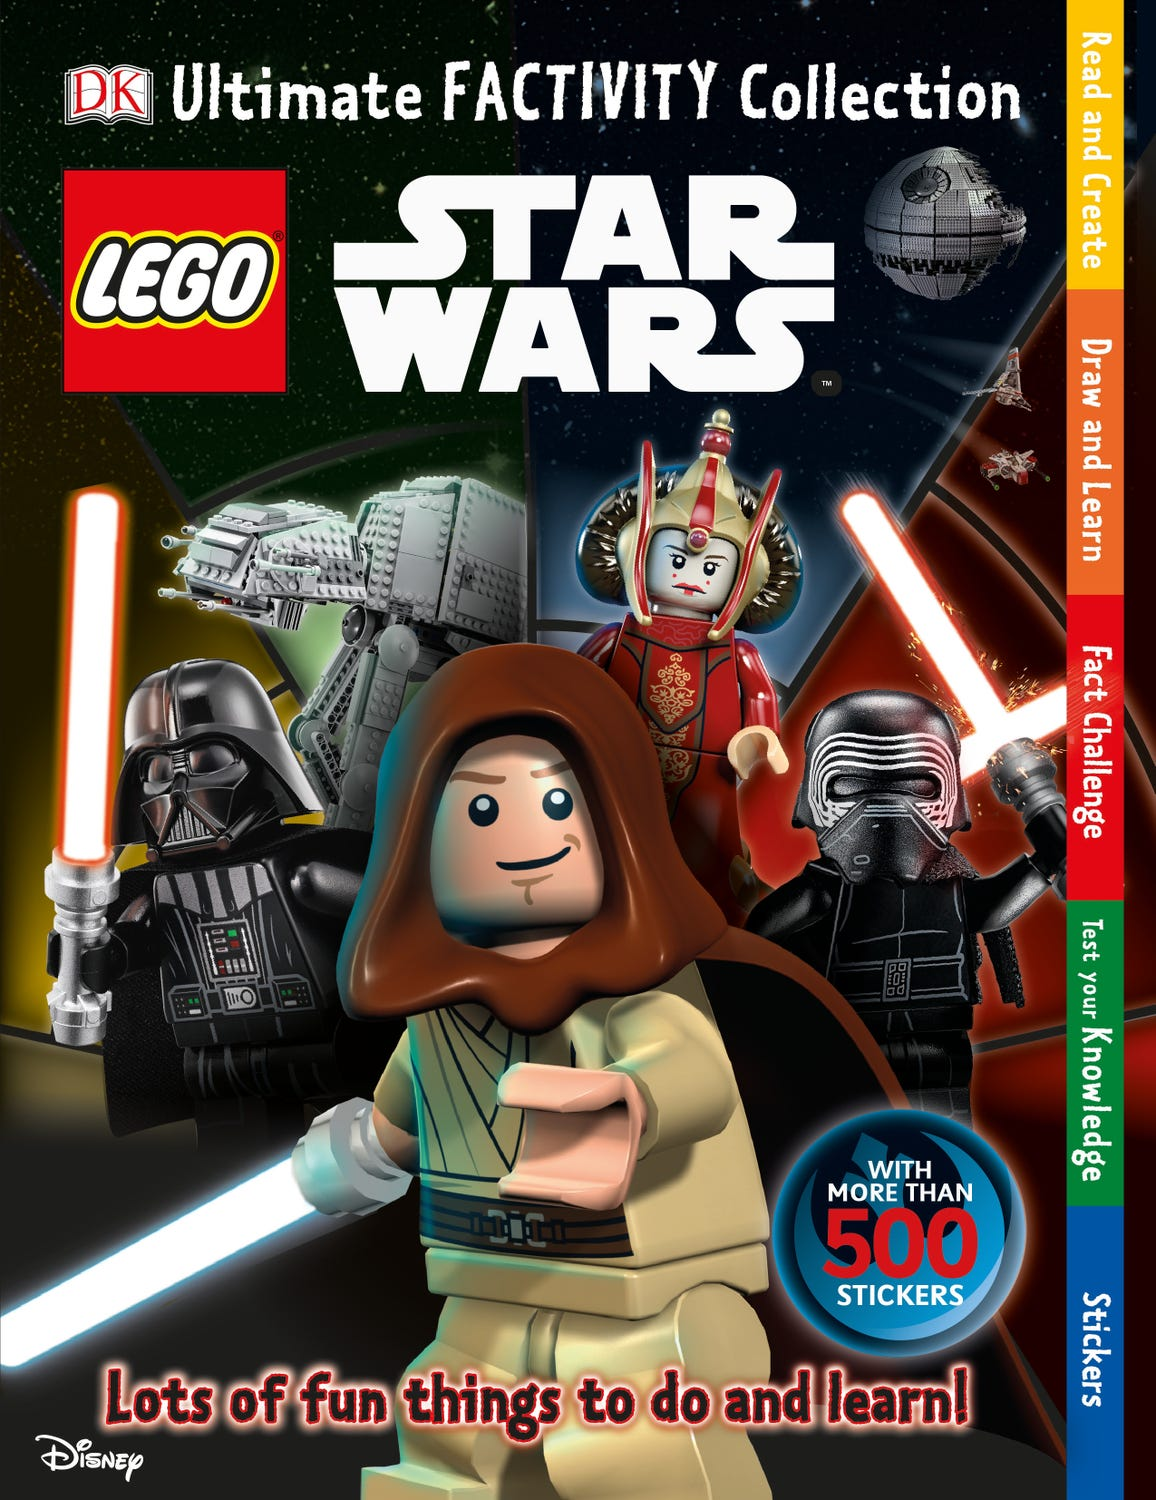 LEGO® Star Wars™ Ultimate Factivity Collection